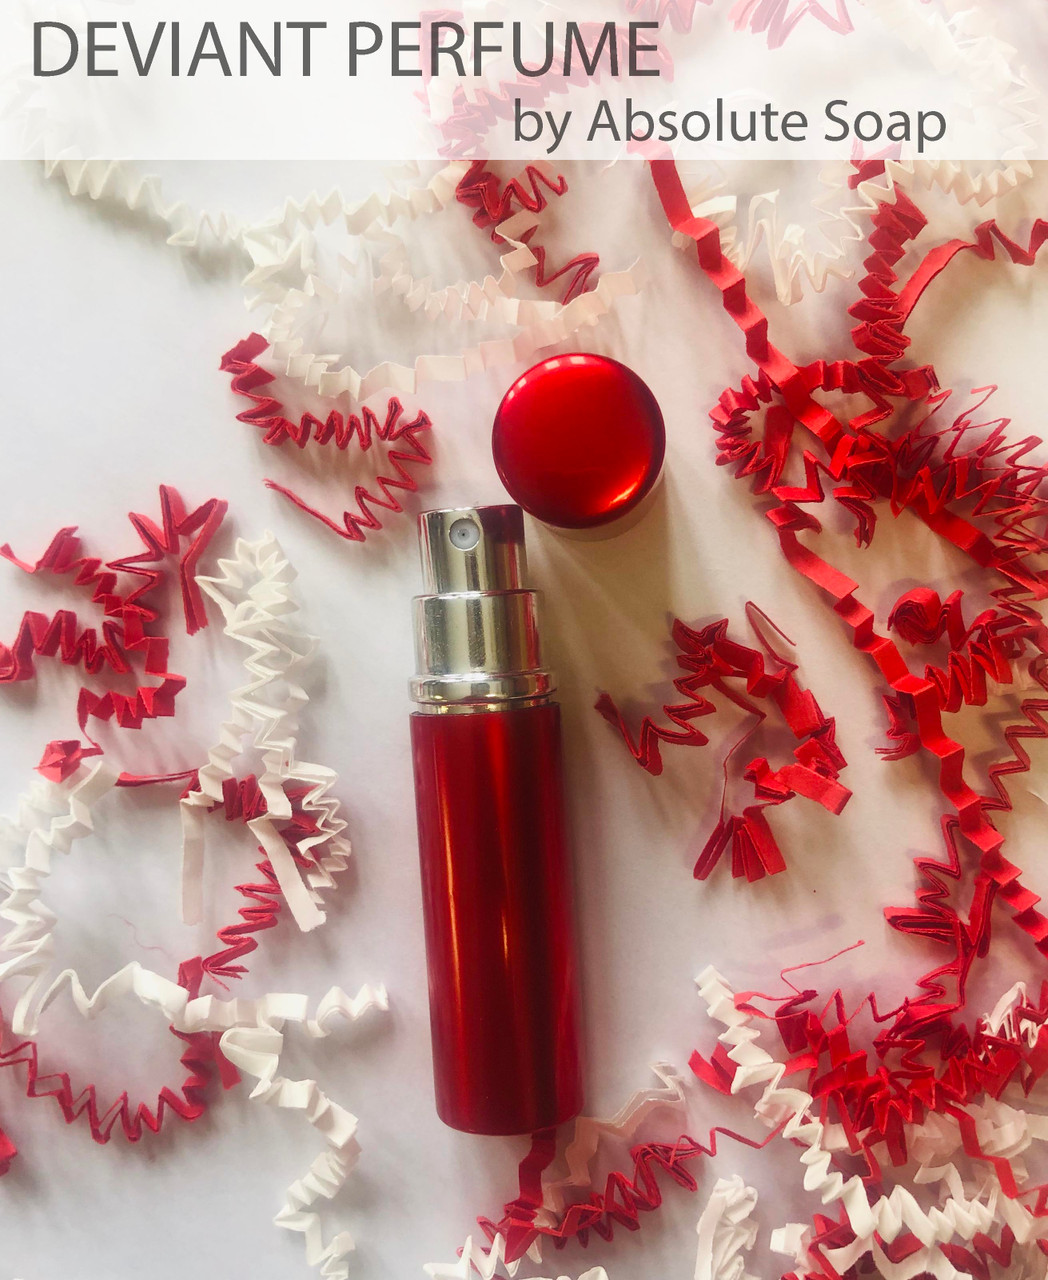 Deviant Perfume | Absolute Soap